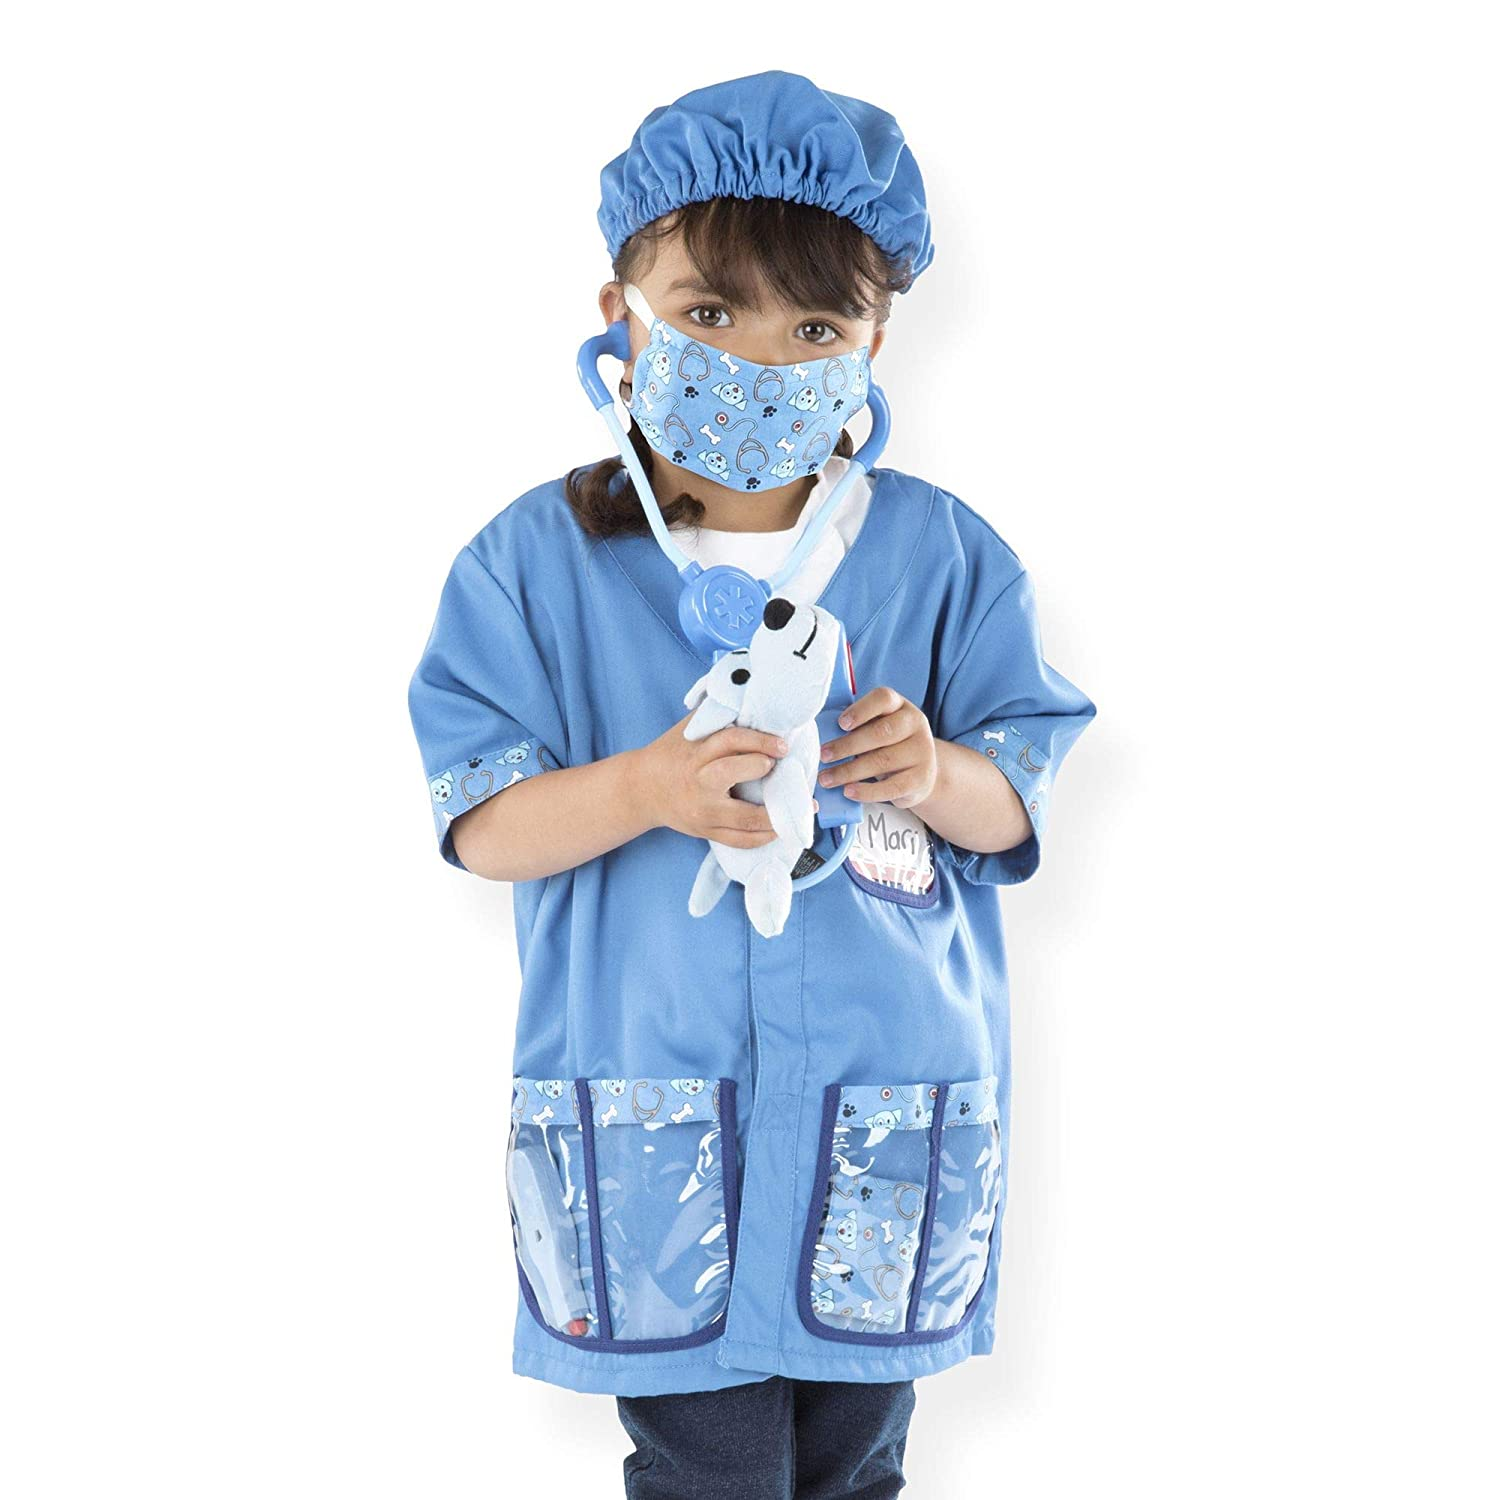 "Melissa & Doug Veterinarian Role-Play Costume Set, Pretend Play, Materials, Machine-Washable, 17.5"" H x 24"" W x 0.75"" L"